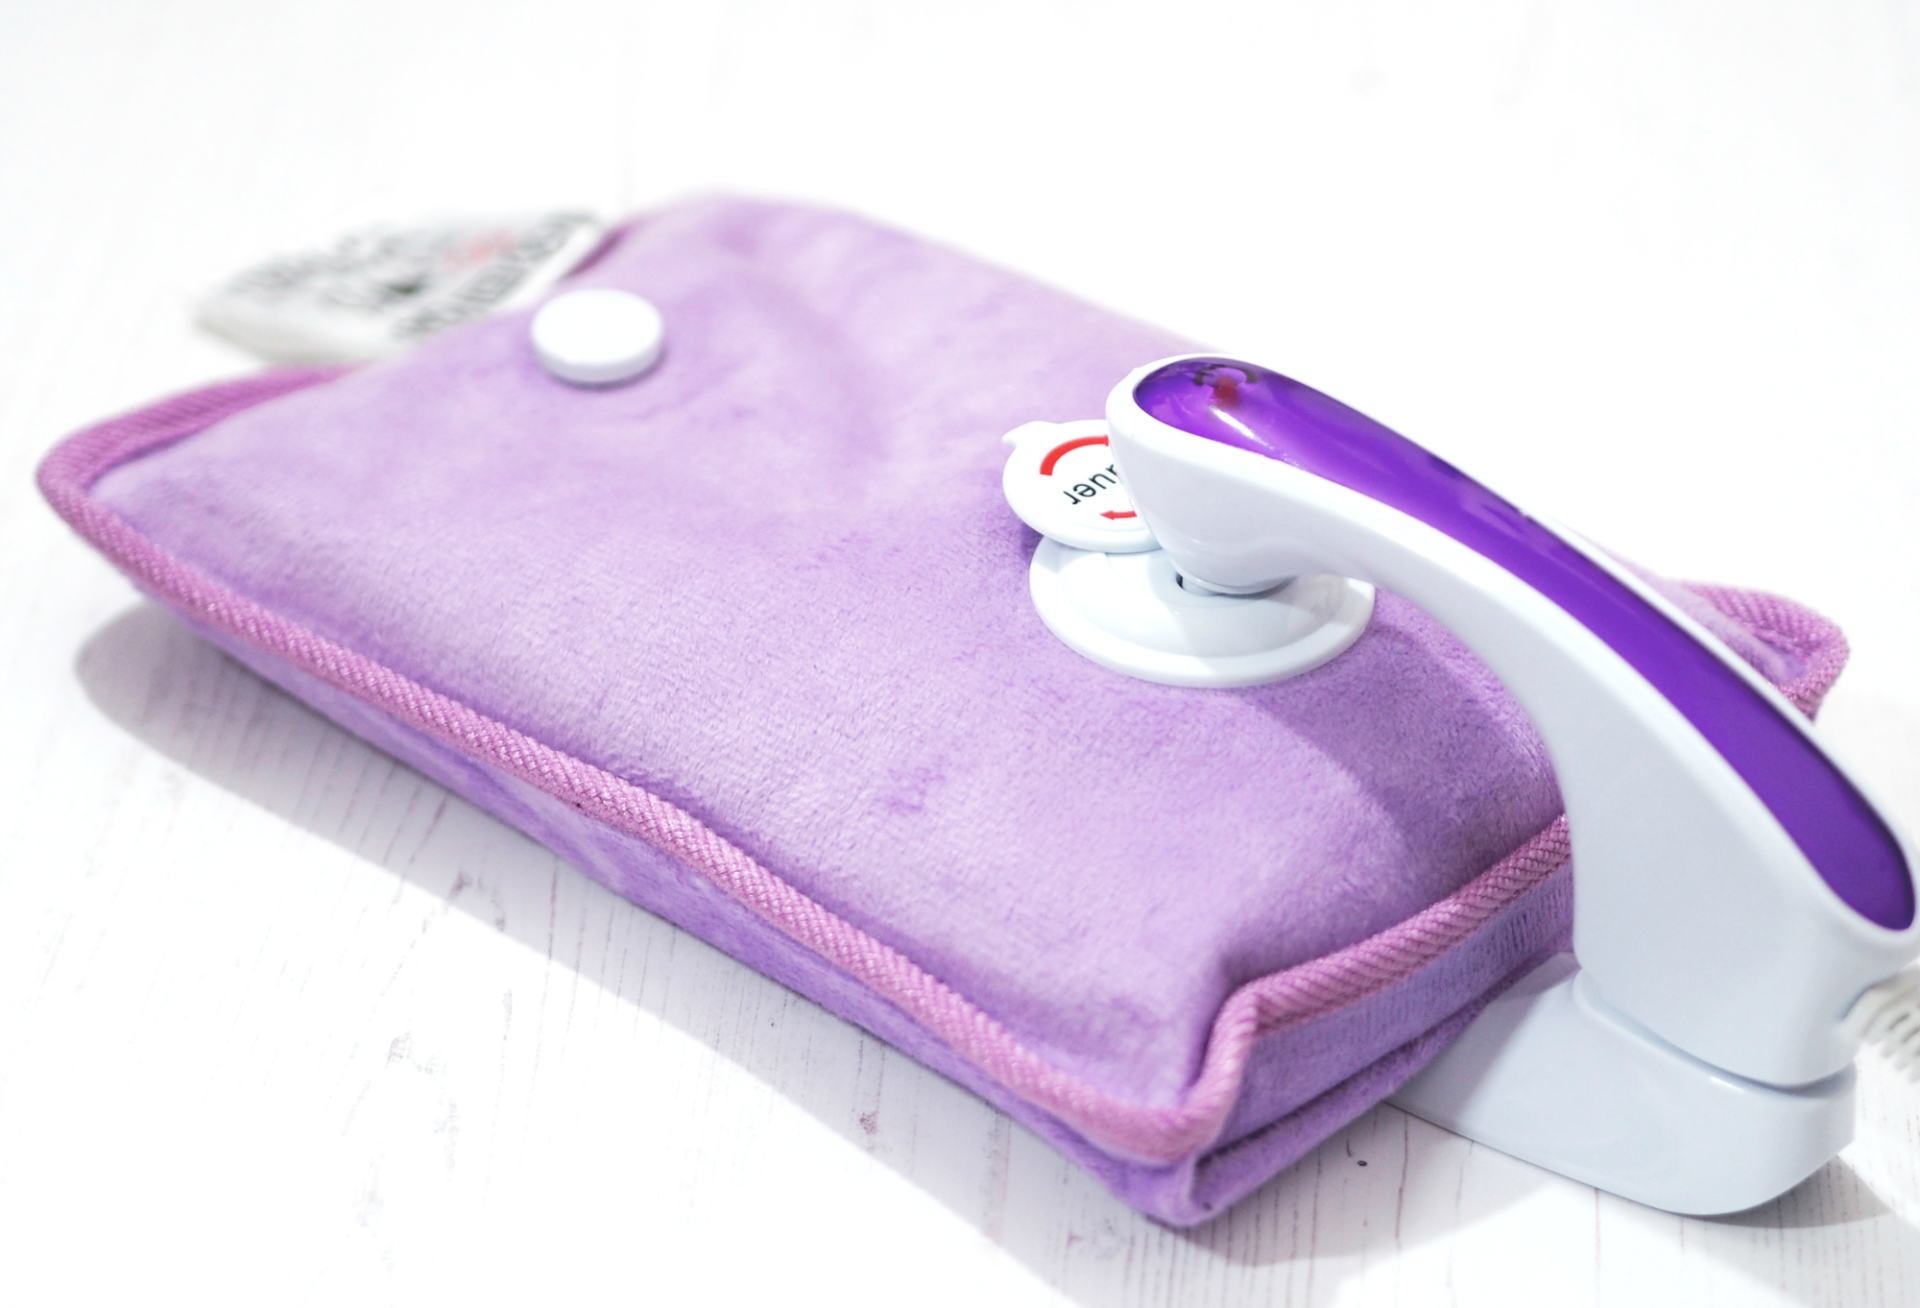 Bauer Rechargeable Electric Hot Water Bottle Review